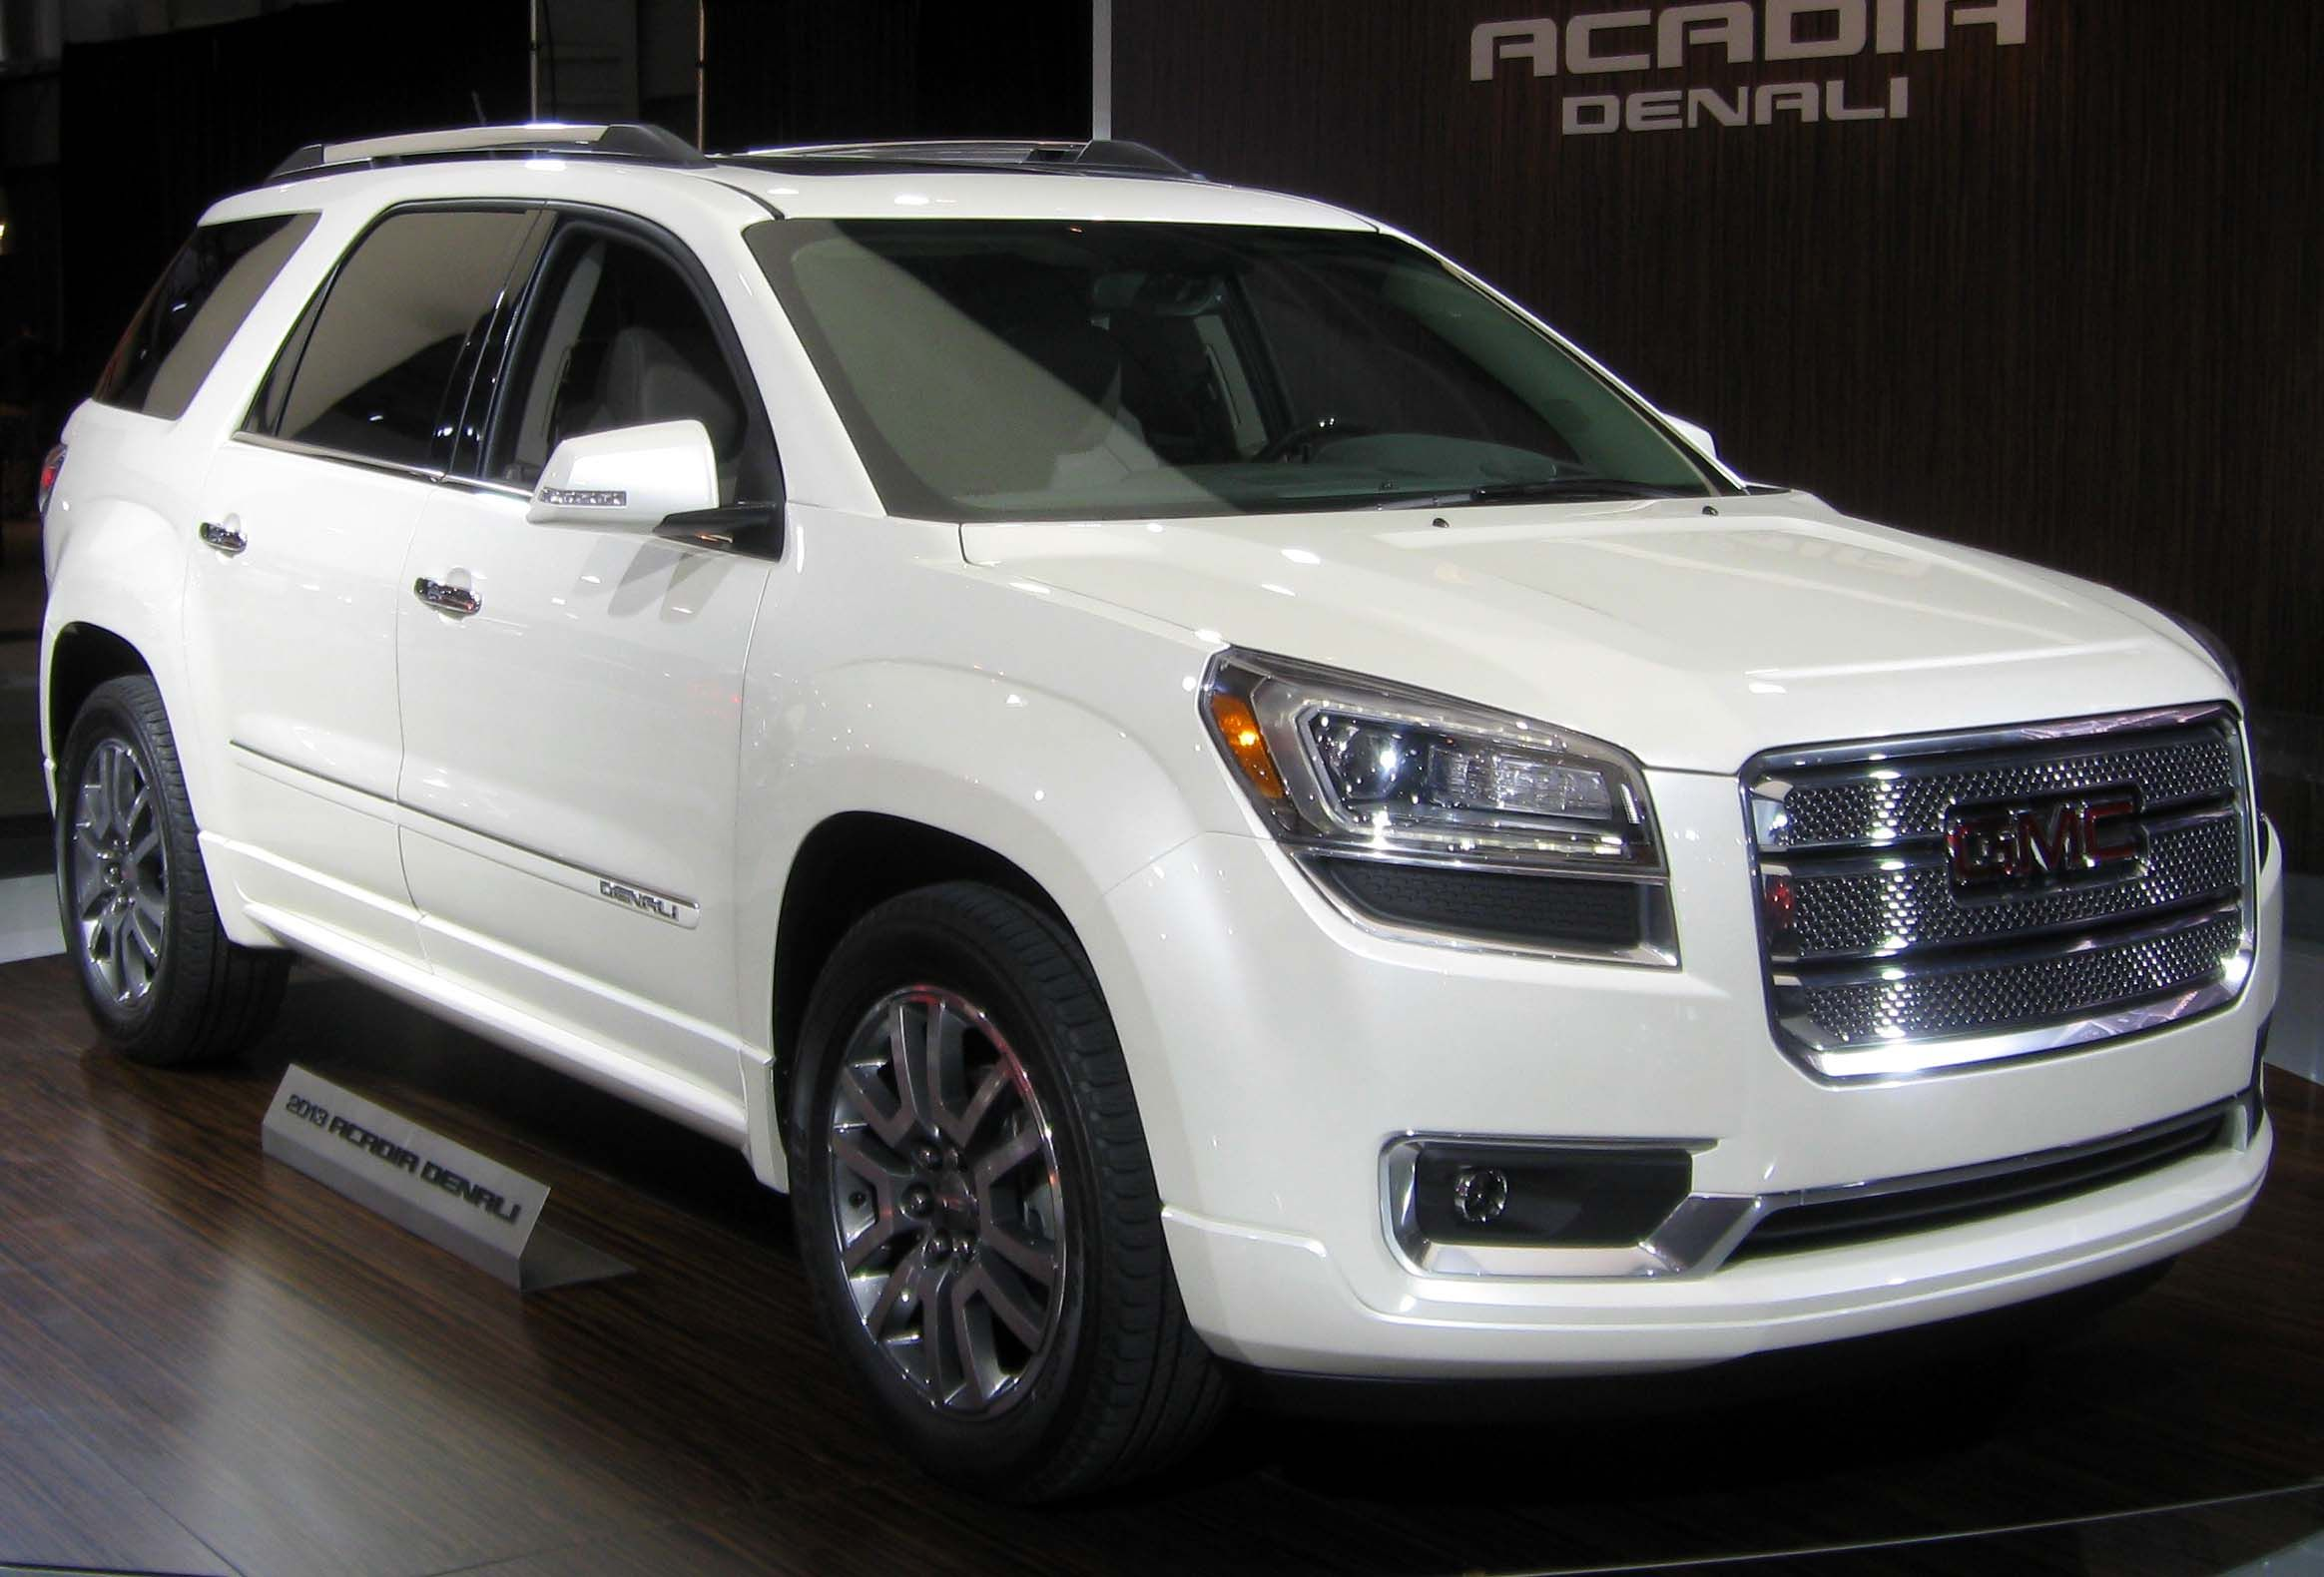 2012 Gmc Acadia Usedengine Description 3 6l Vin D 8th Digit Opt Llt Capacity 38 K Miles Image Courtesy Https Up Gmc Terrain Terrain Denali Gmc